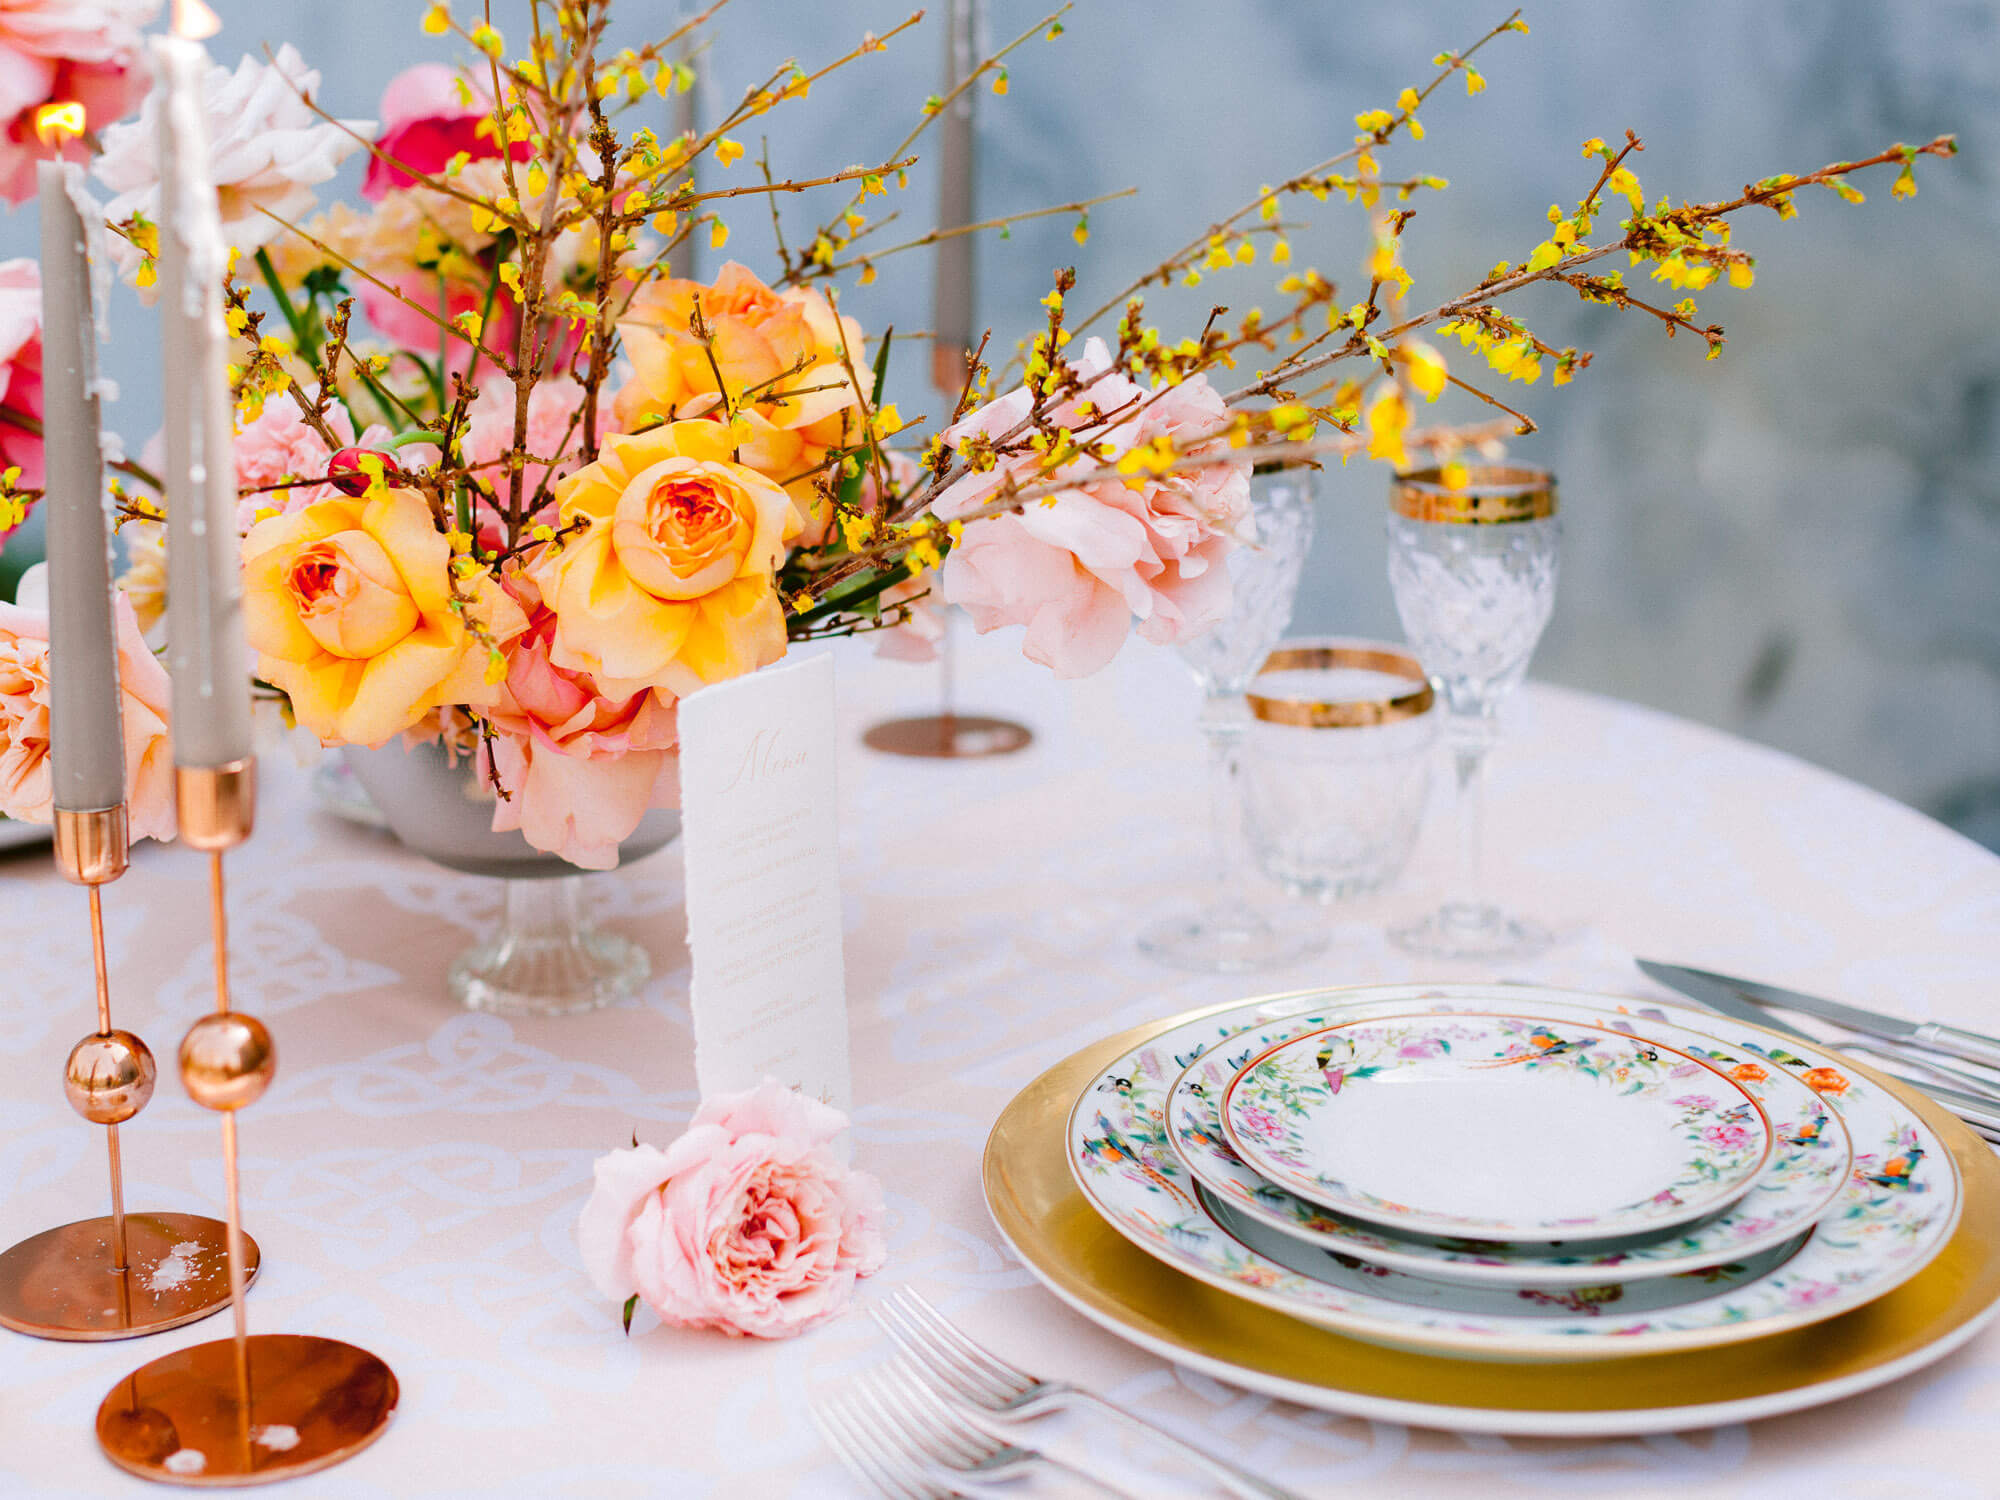 wedding reception table decoration with modern yellow floral centrepiece by Portugal Wedding Photographer